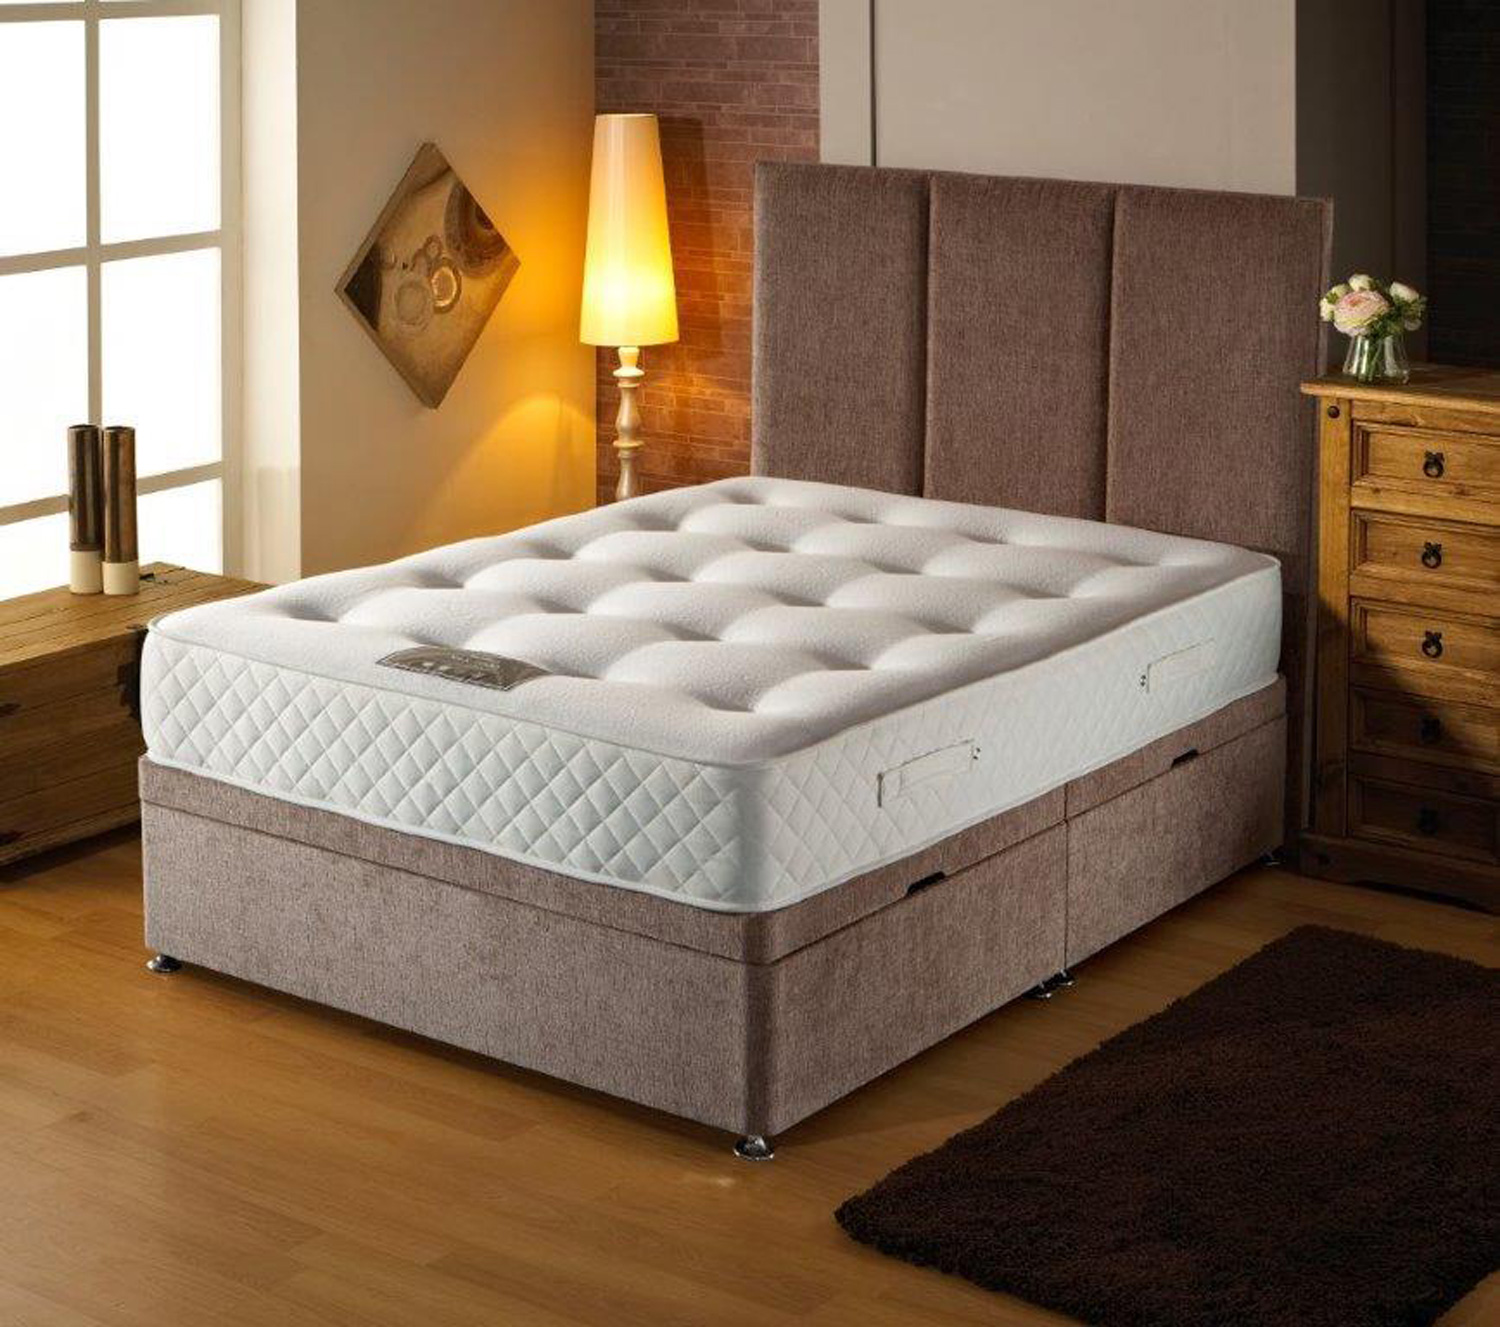 Durabed Sideopening Double Ottoman Base with 1000 Pocket Mattress